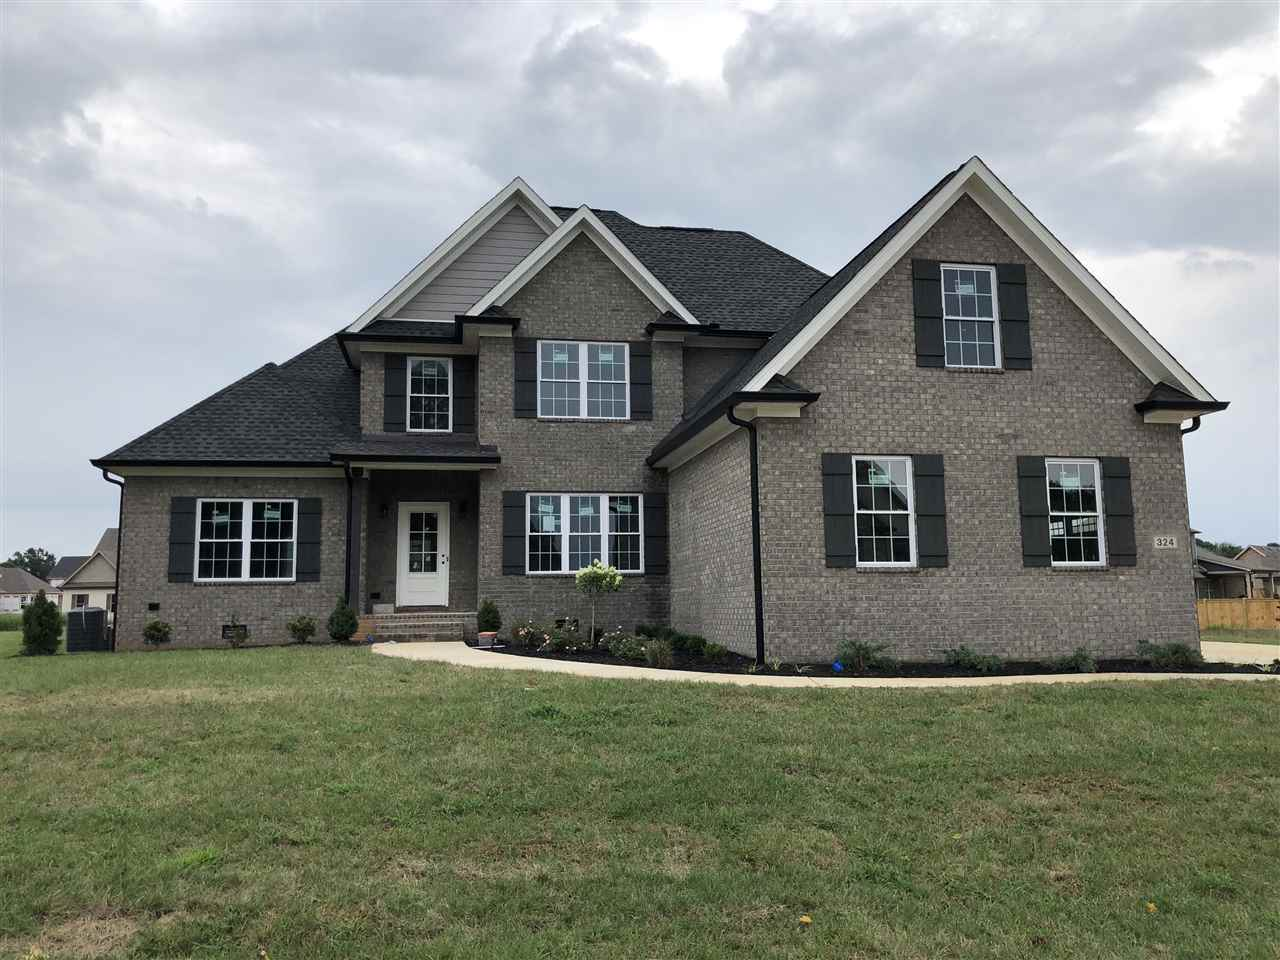 324 Nash Stone Court Lot 27 - Drakes Ridge Subdivision